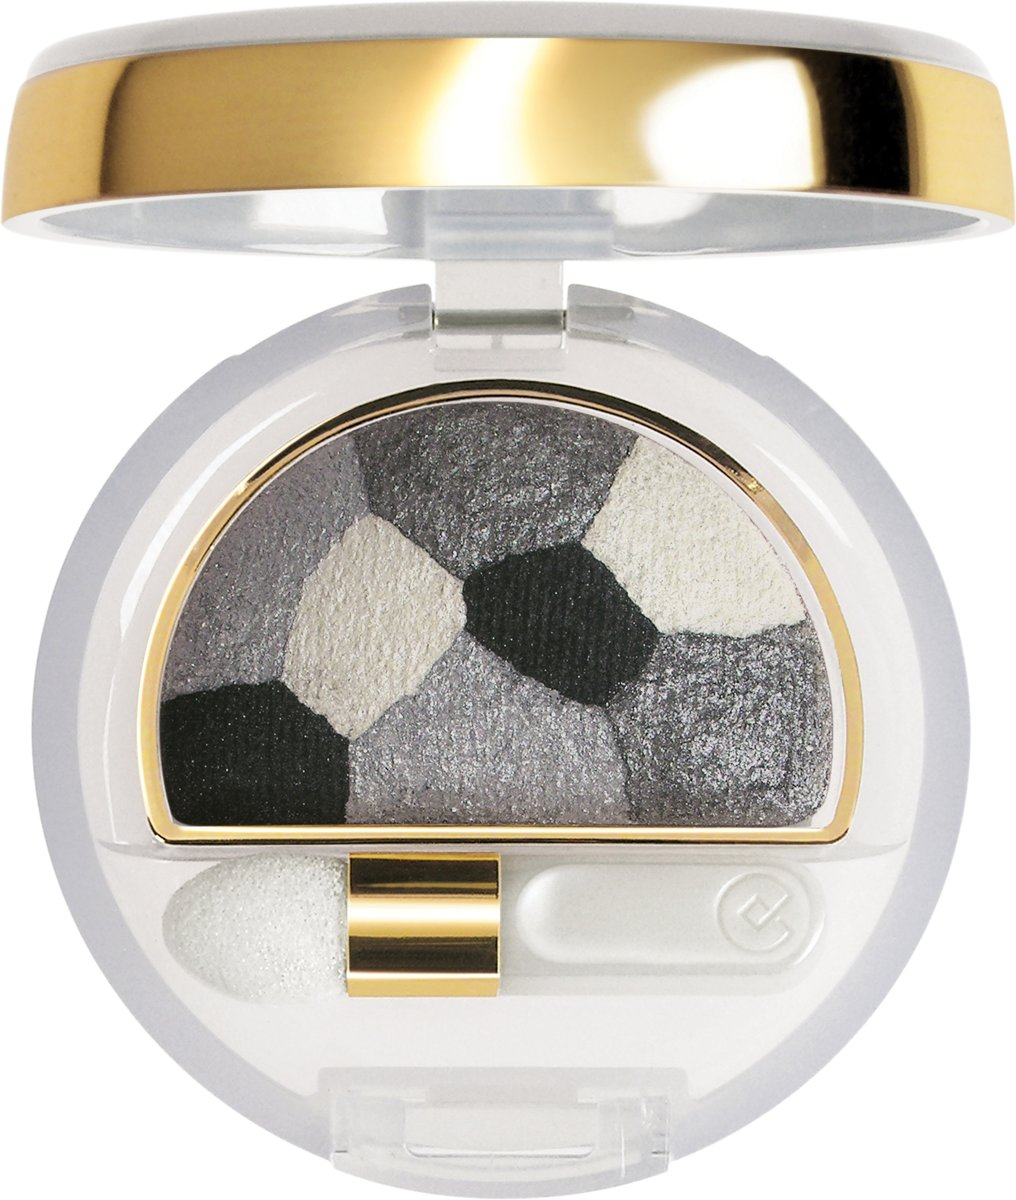 Collistar Double Effect Wet & Dry Eyeshadow - 19 Smoky Eyes - Oogschaduw